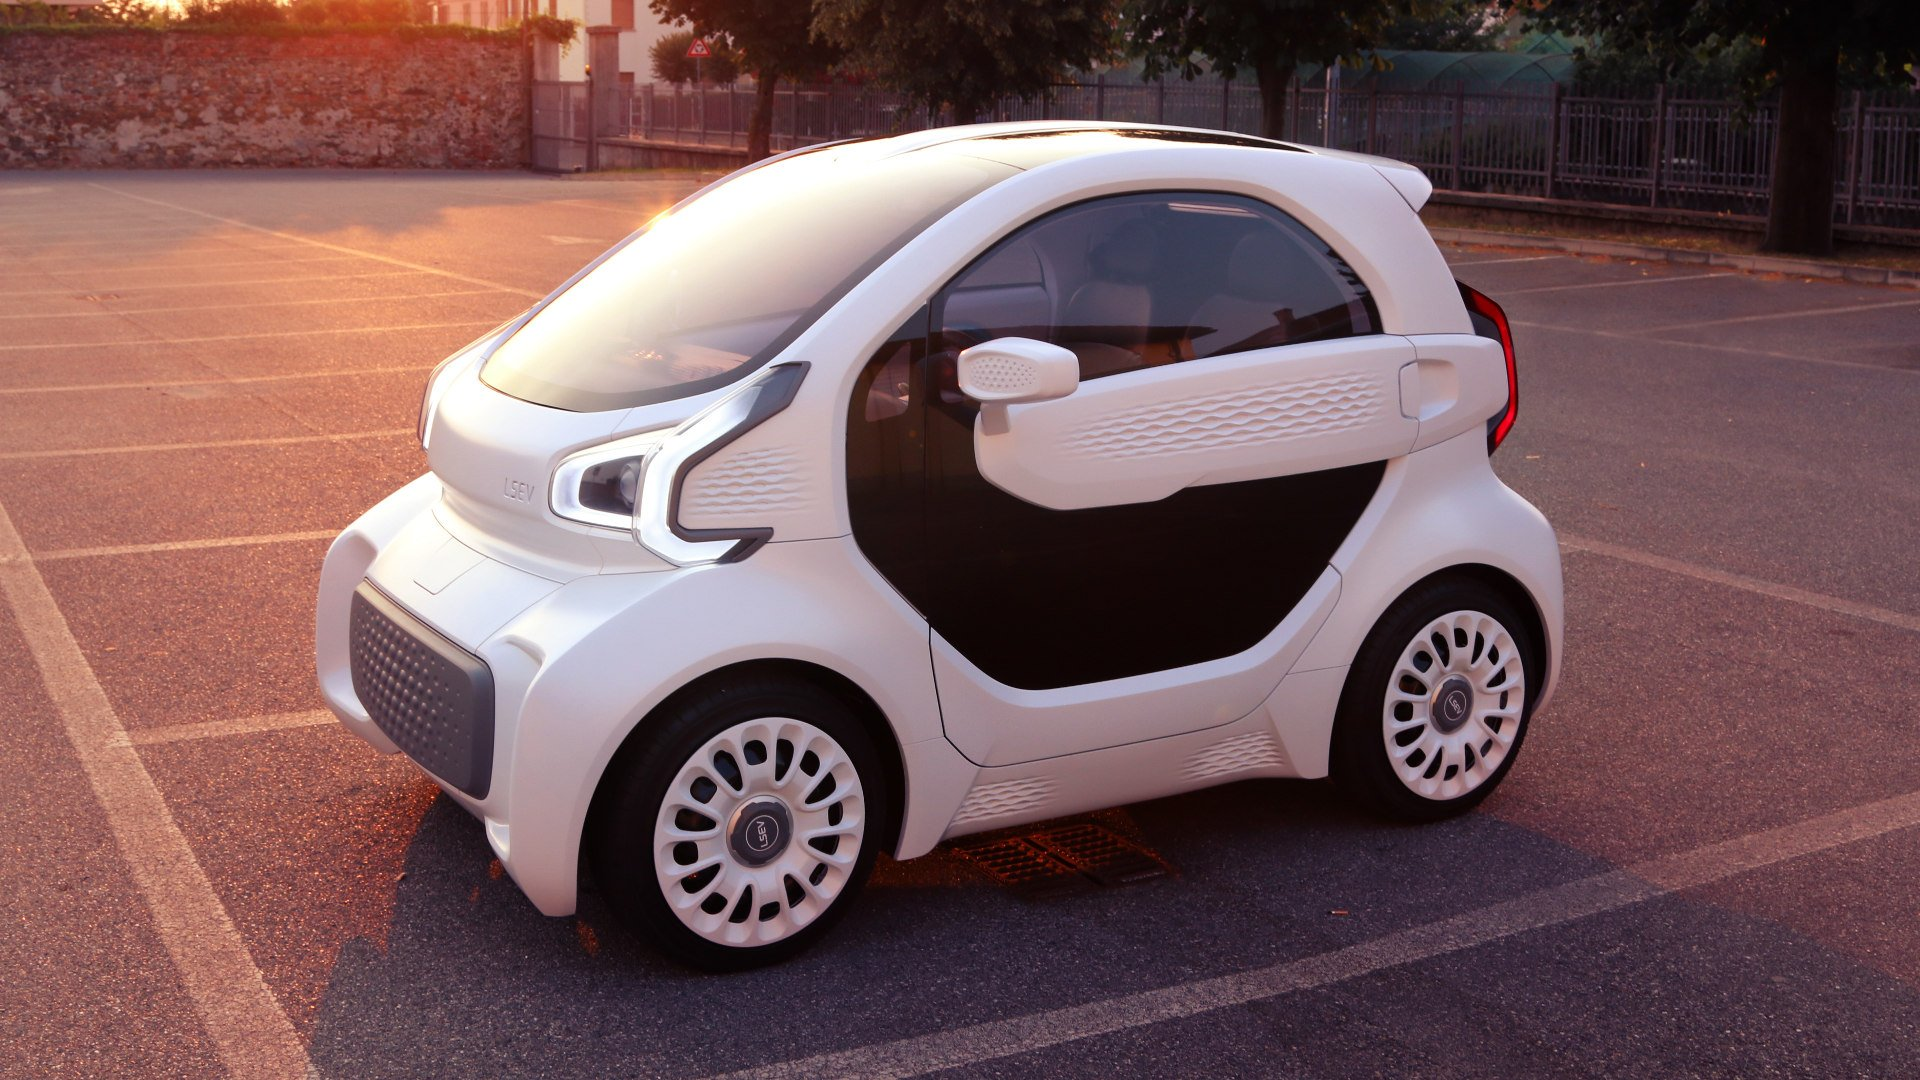 LSEV is Mass-Produced 3D Printed Car by XEV and Polymaker | All3DP